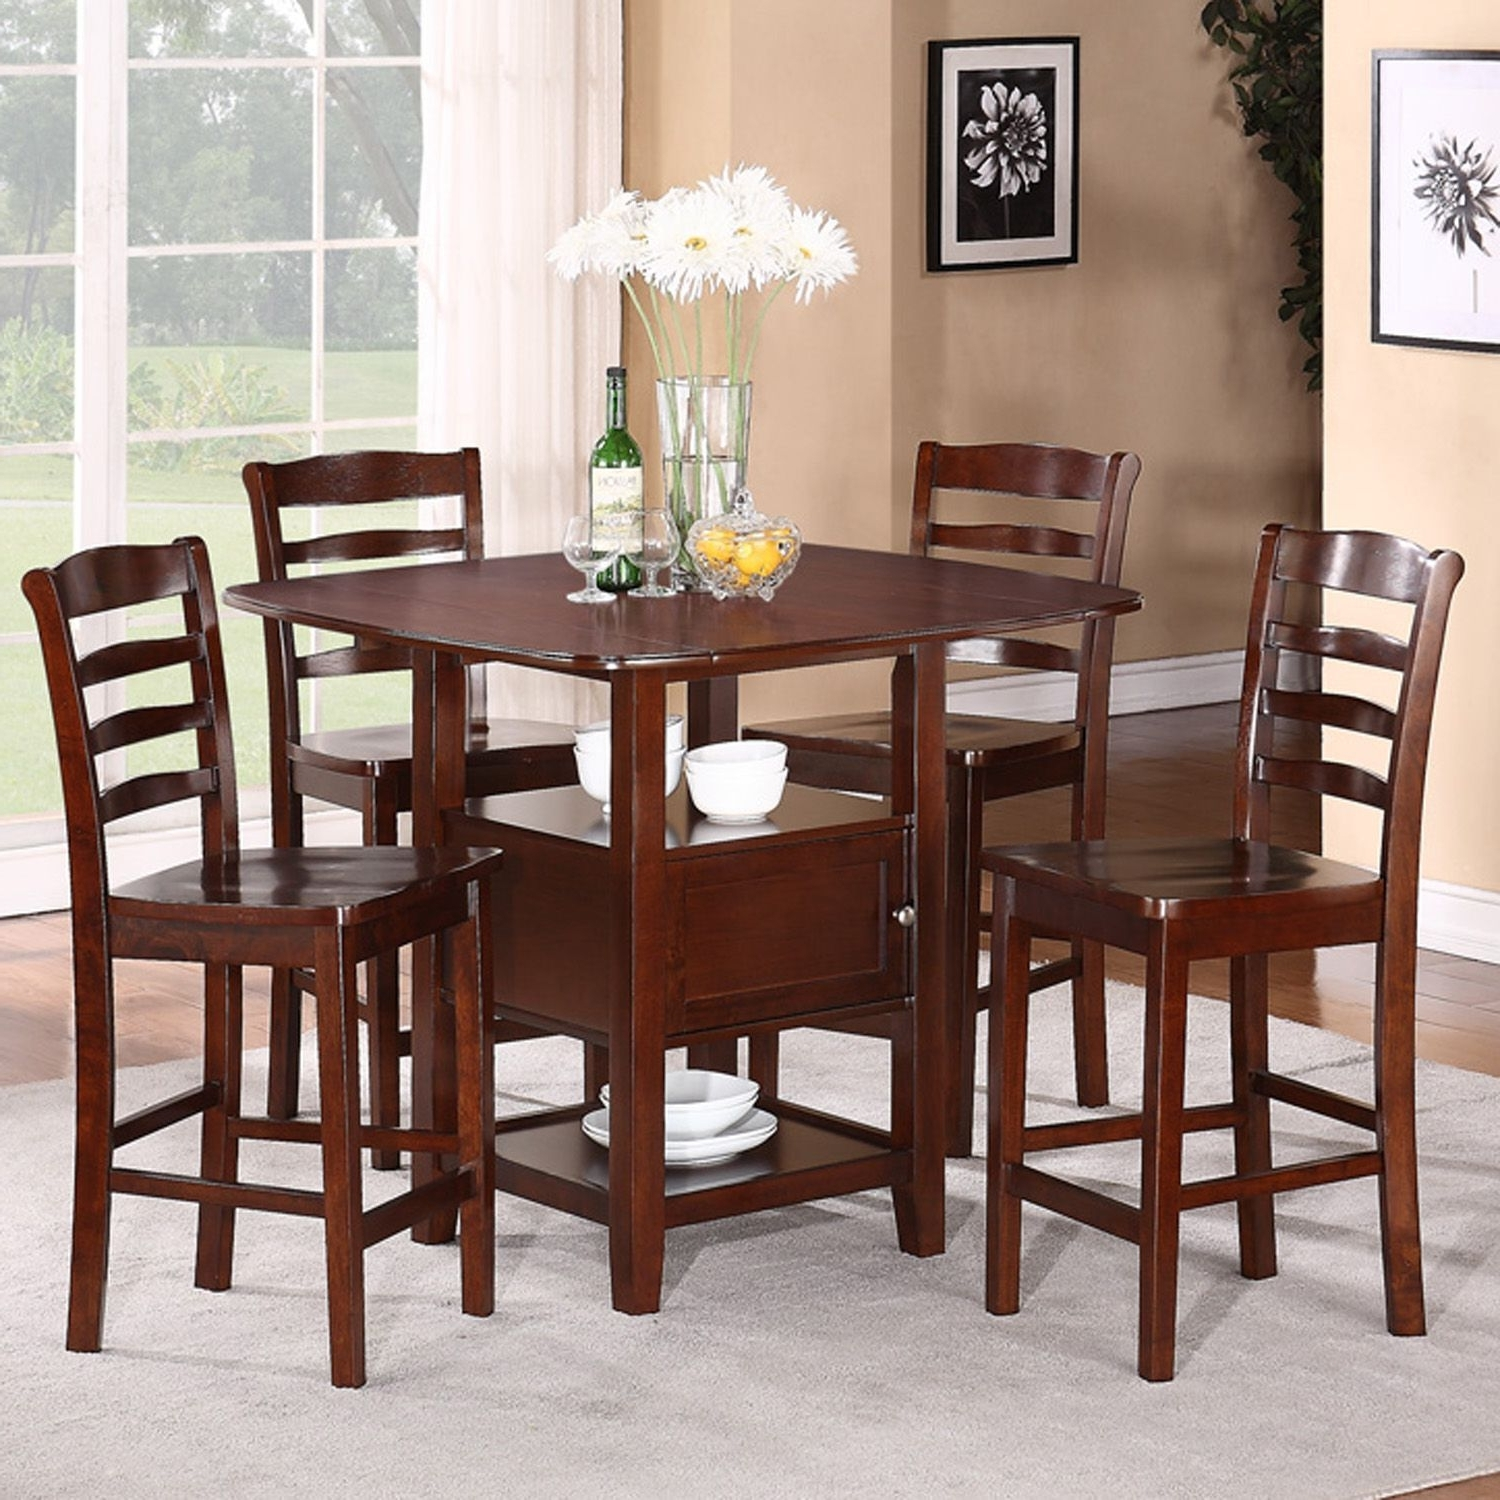 Most Up To Date Some Tips For Dinner Table Set – Pickndecor With Craftsman 5 Piece Round Dining Sets With Side Chairs (Gallery 4 of 25)